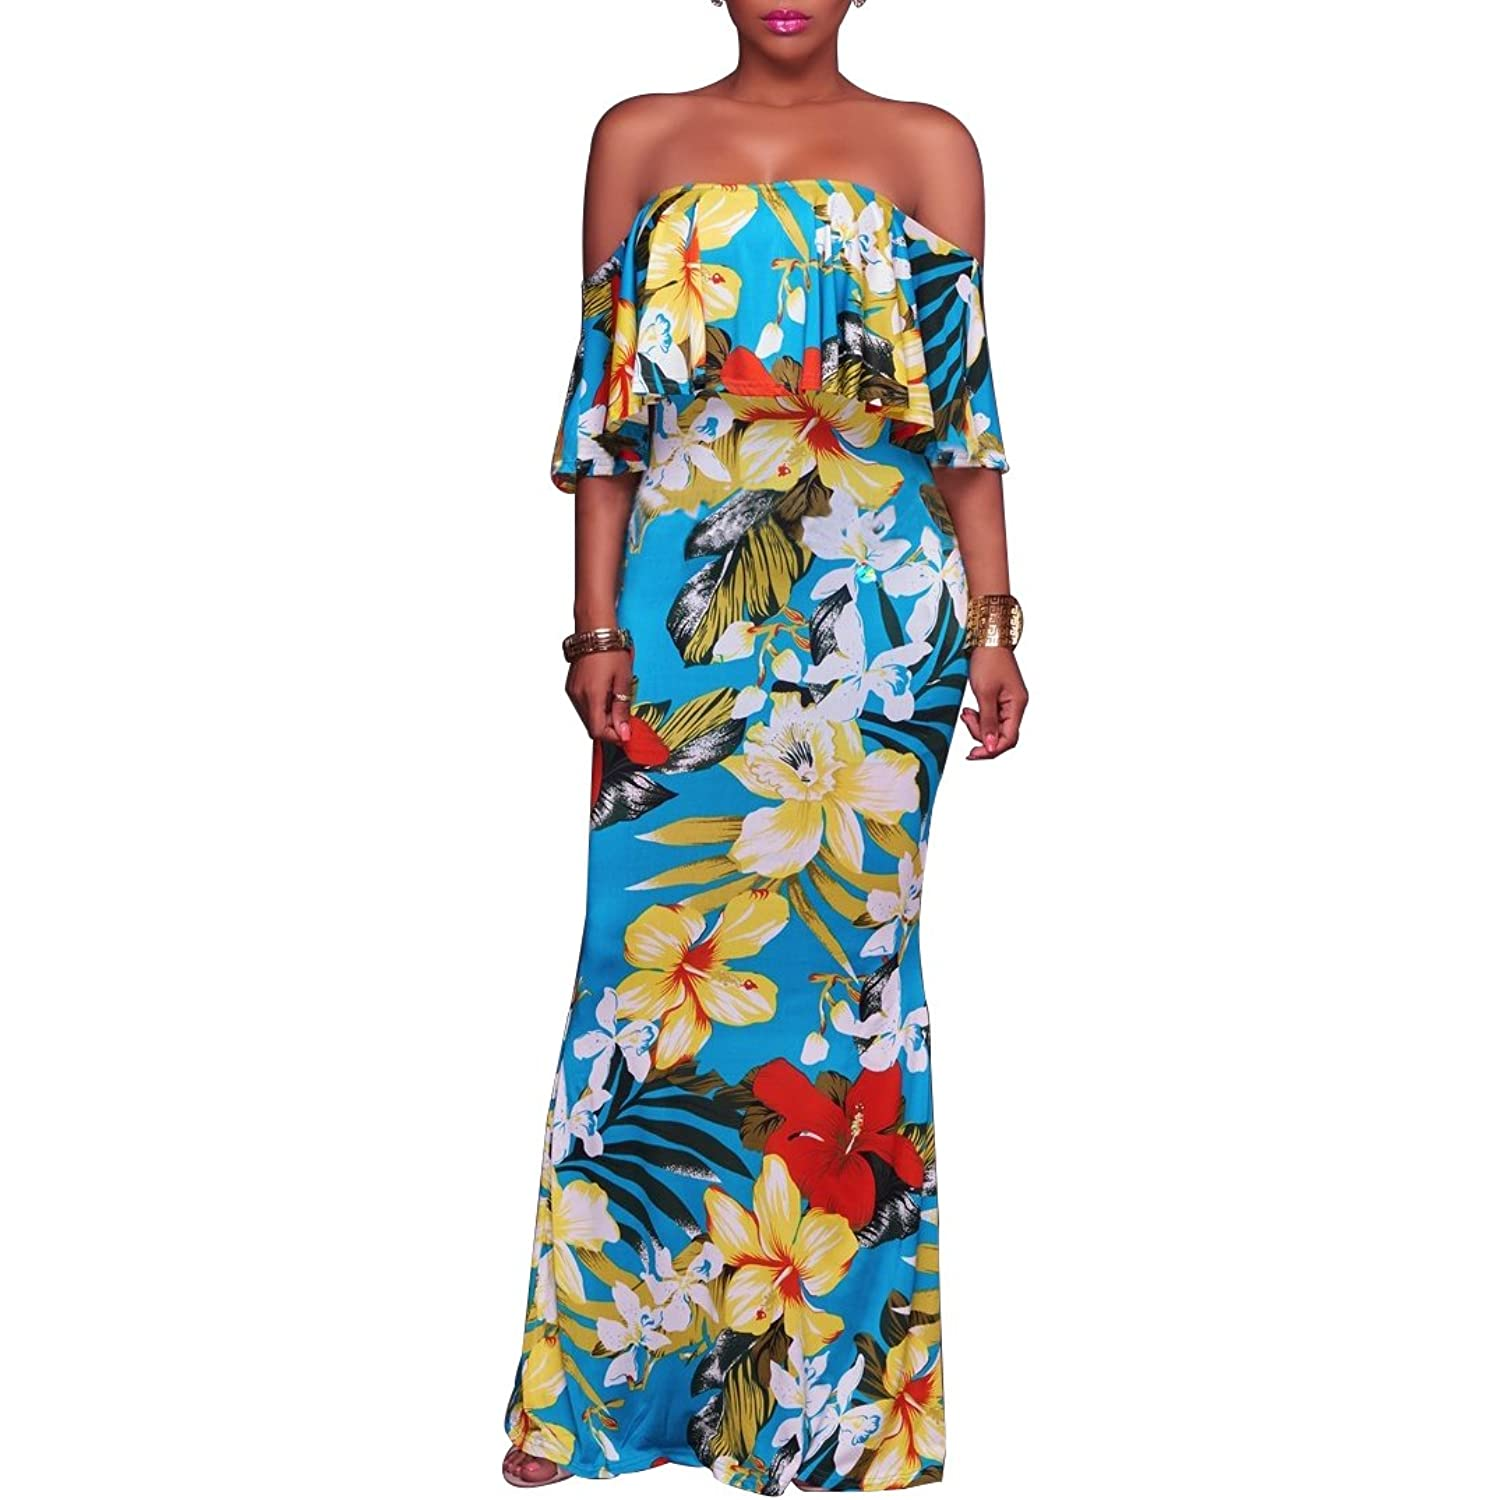 Dynen Women's Floral Print Off Shoulder Ruffle Party Long Maxi Dress by Dynen